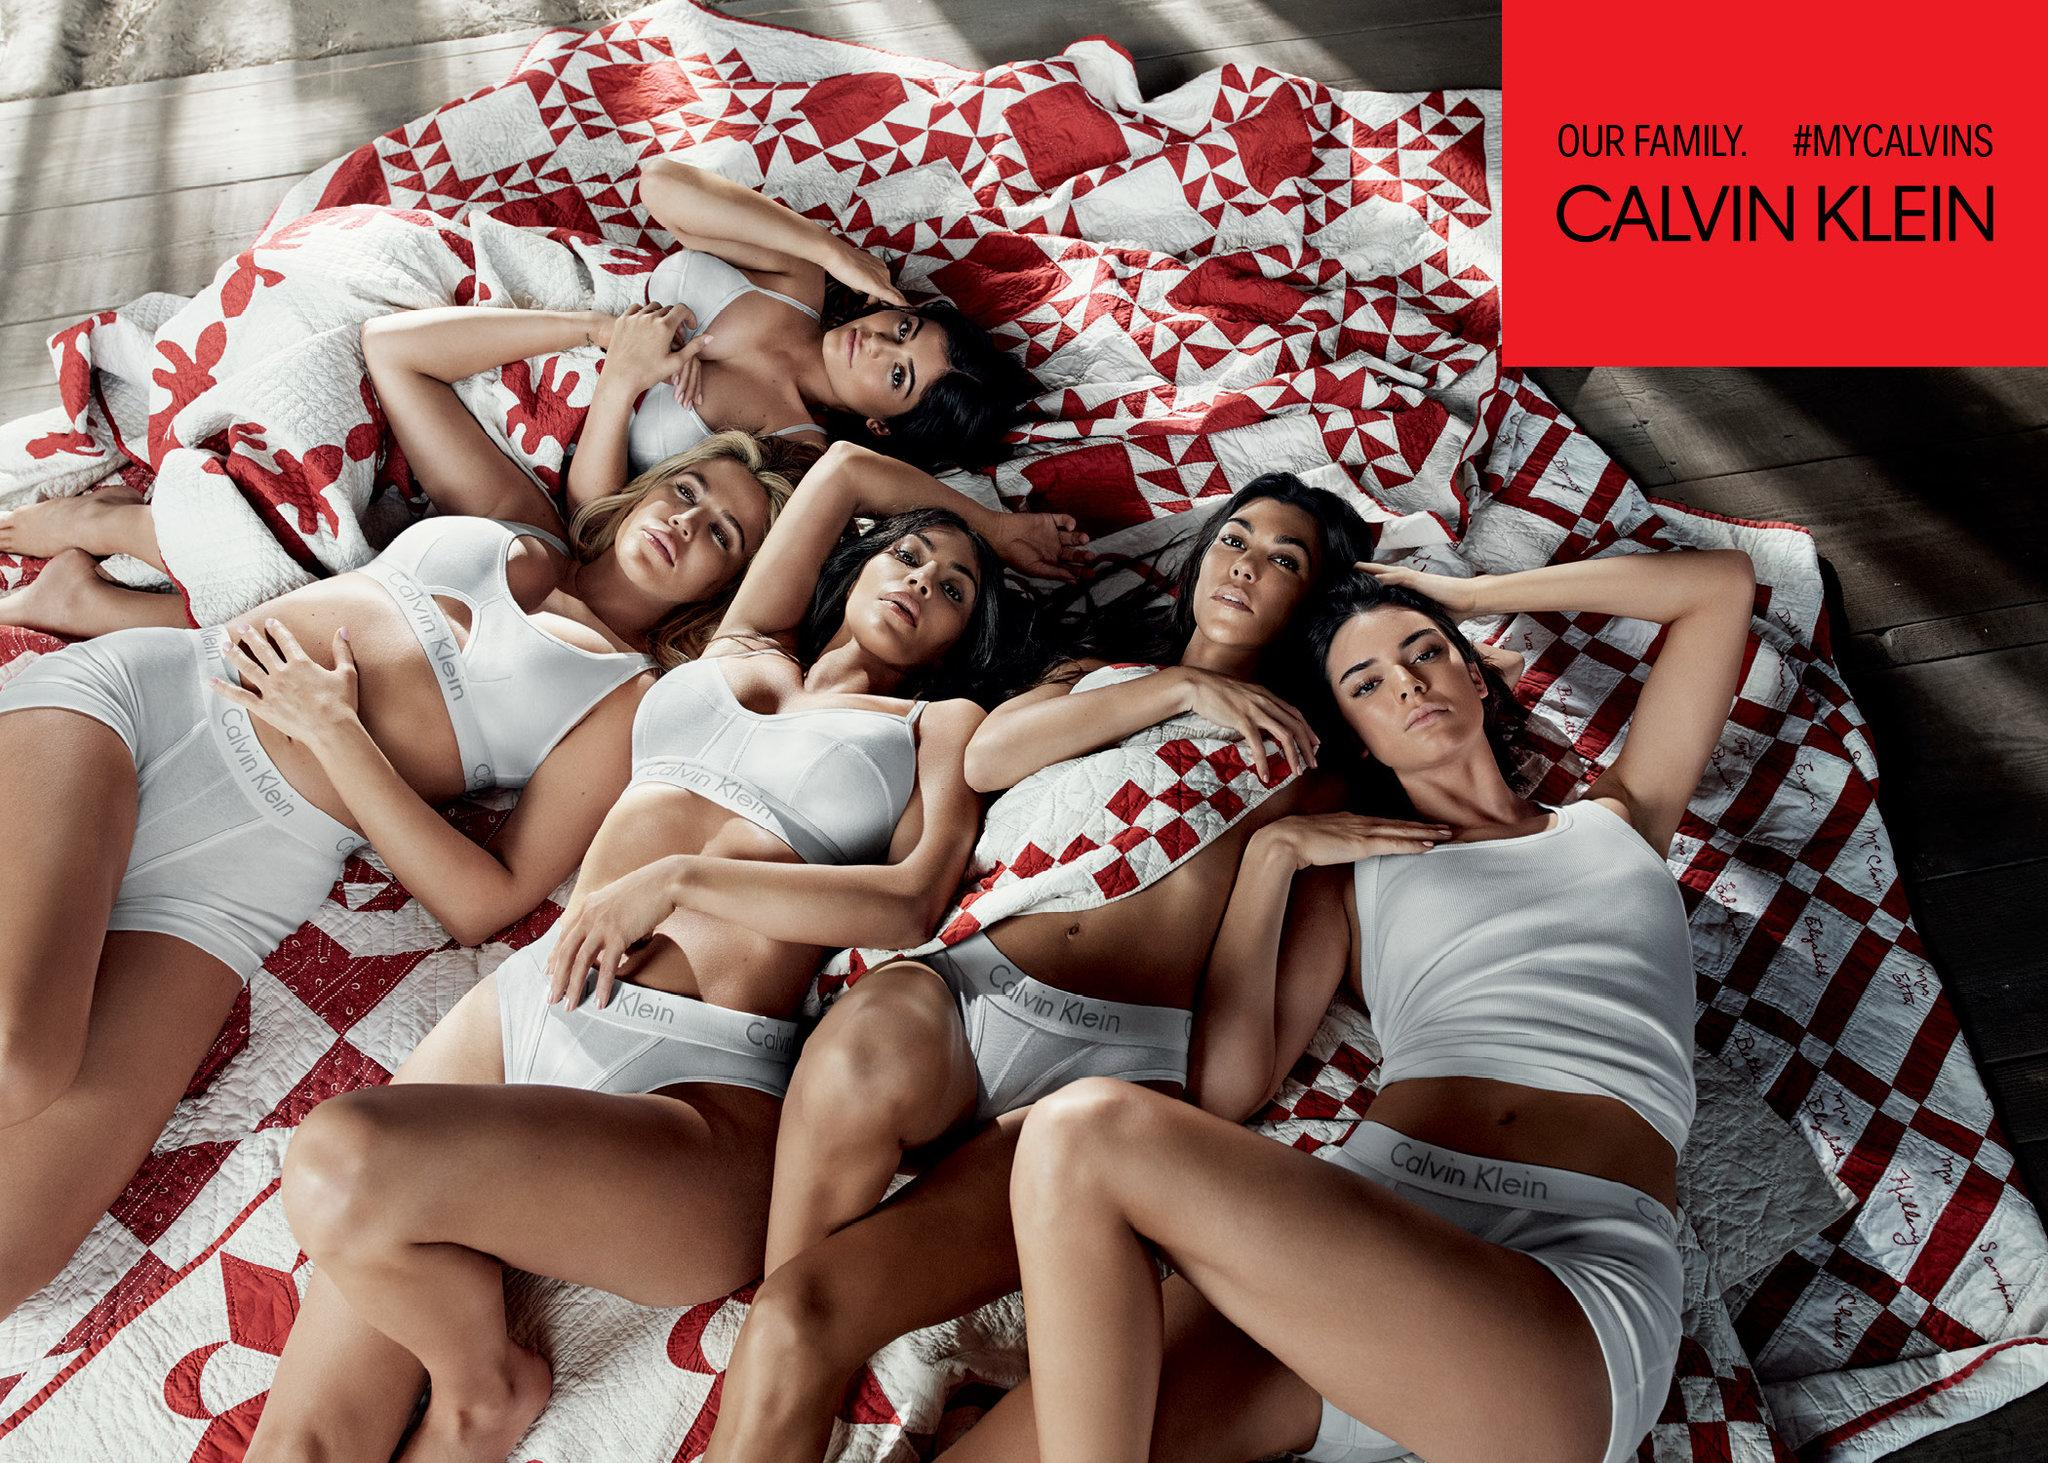 An advertisement featuring the Kardashian-Jenner sisters on a quilt. Credit: Willy Vanderperre, via Calvin Klein